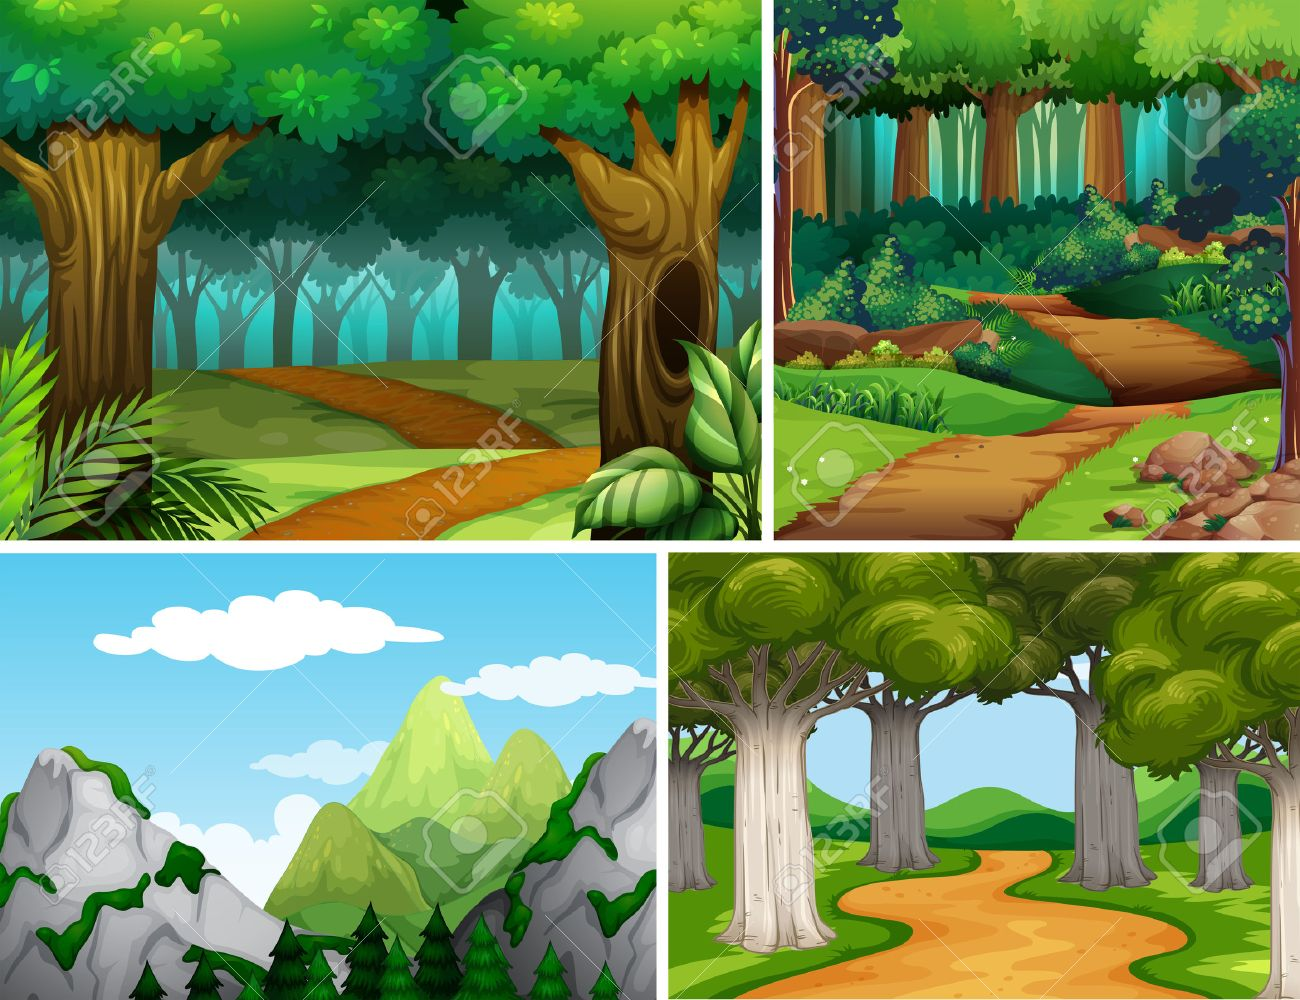 Four nature scenes with forest and mountain illustration - 53963454